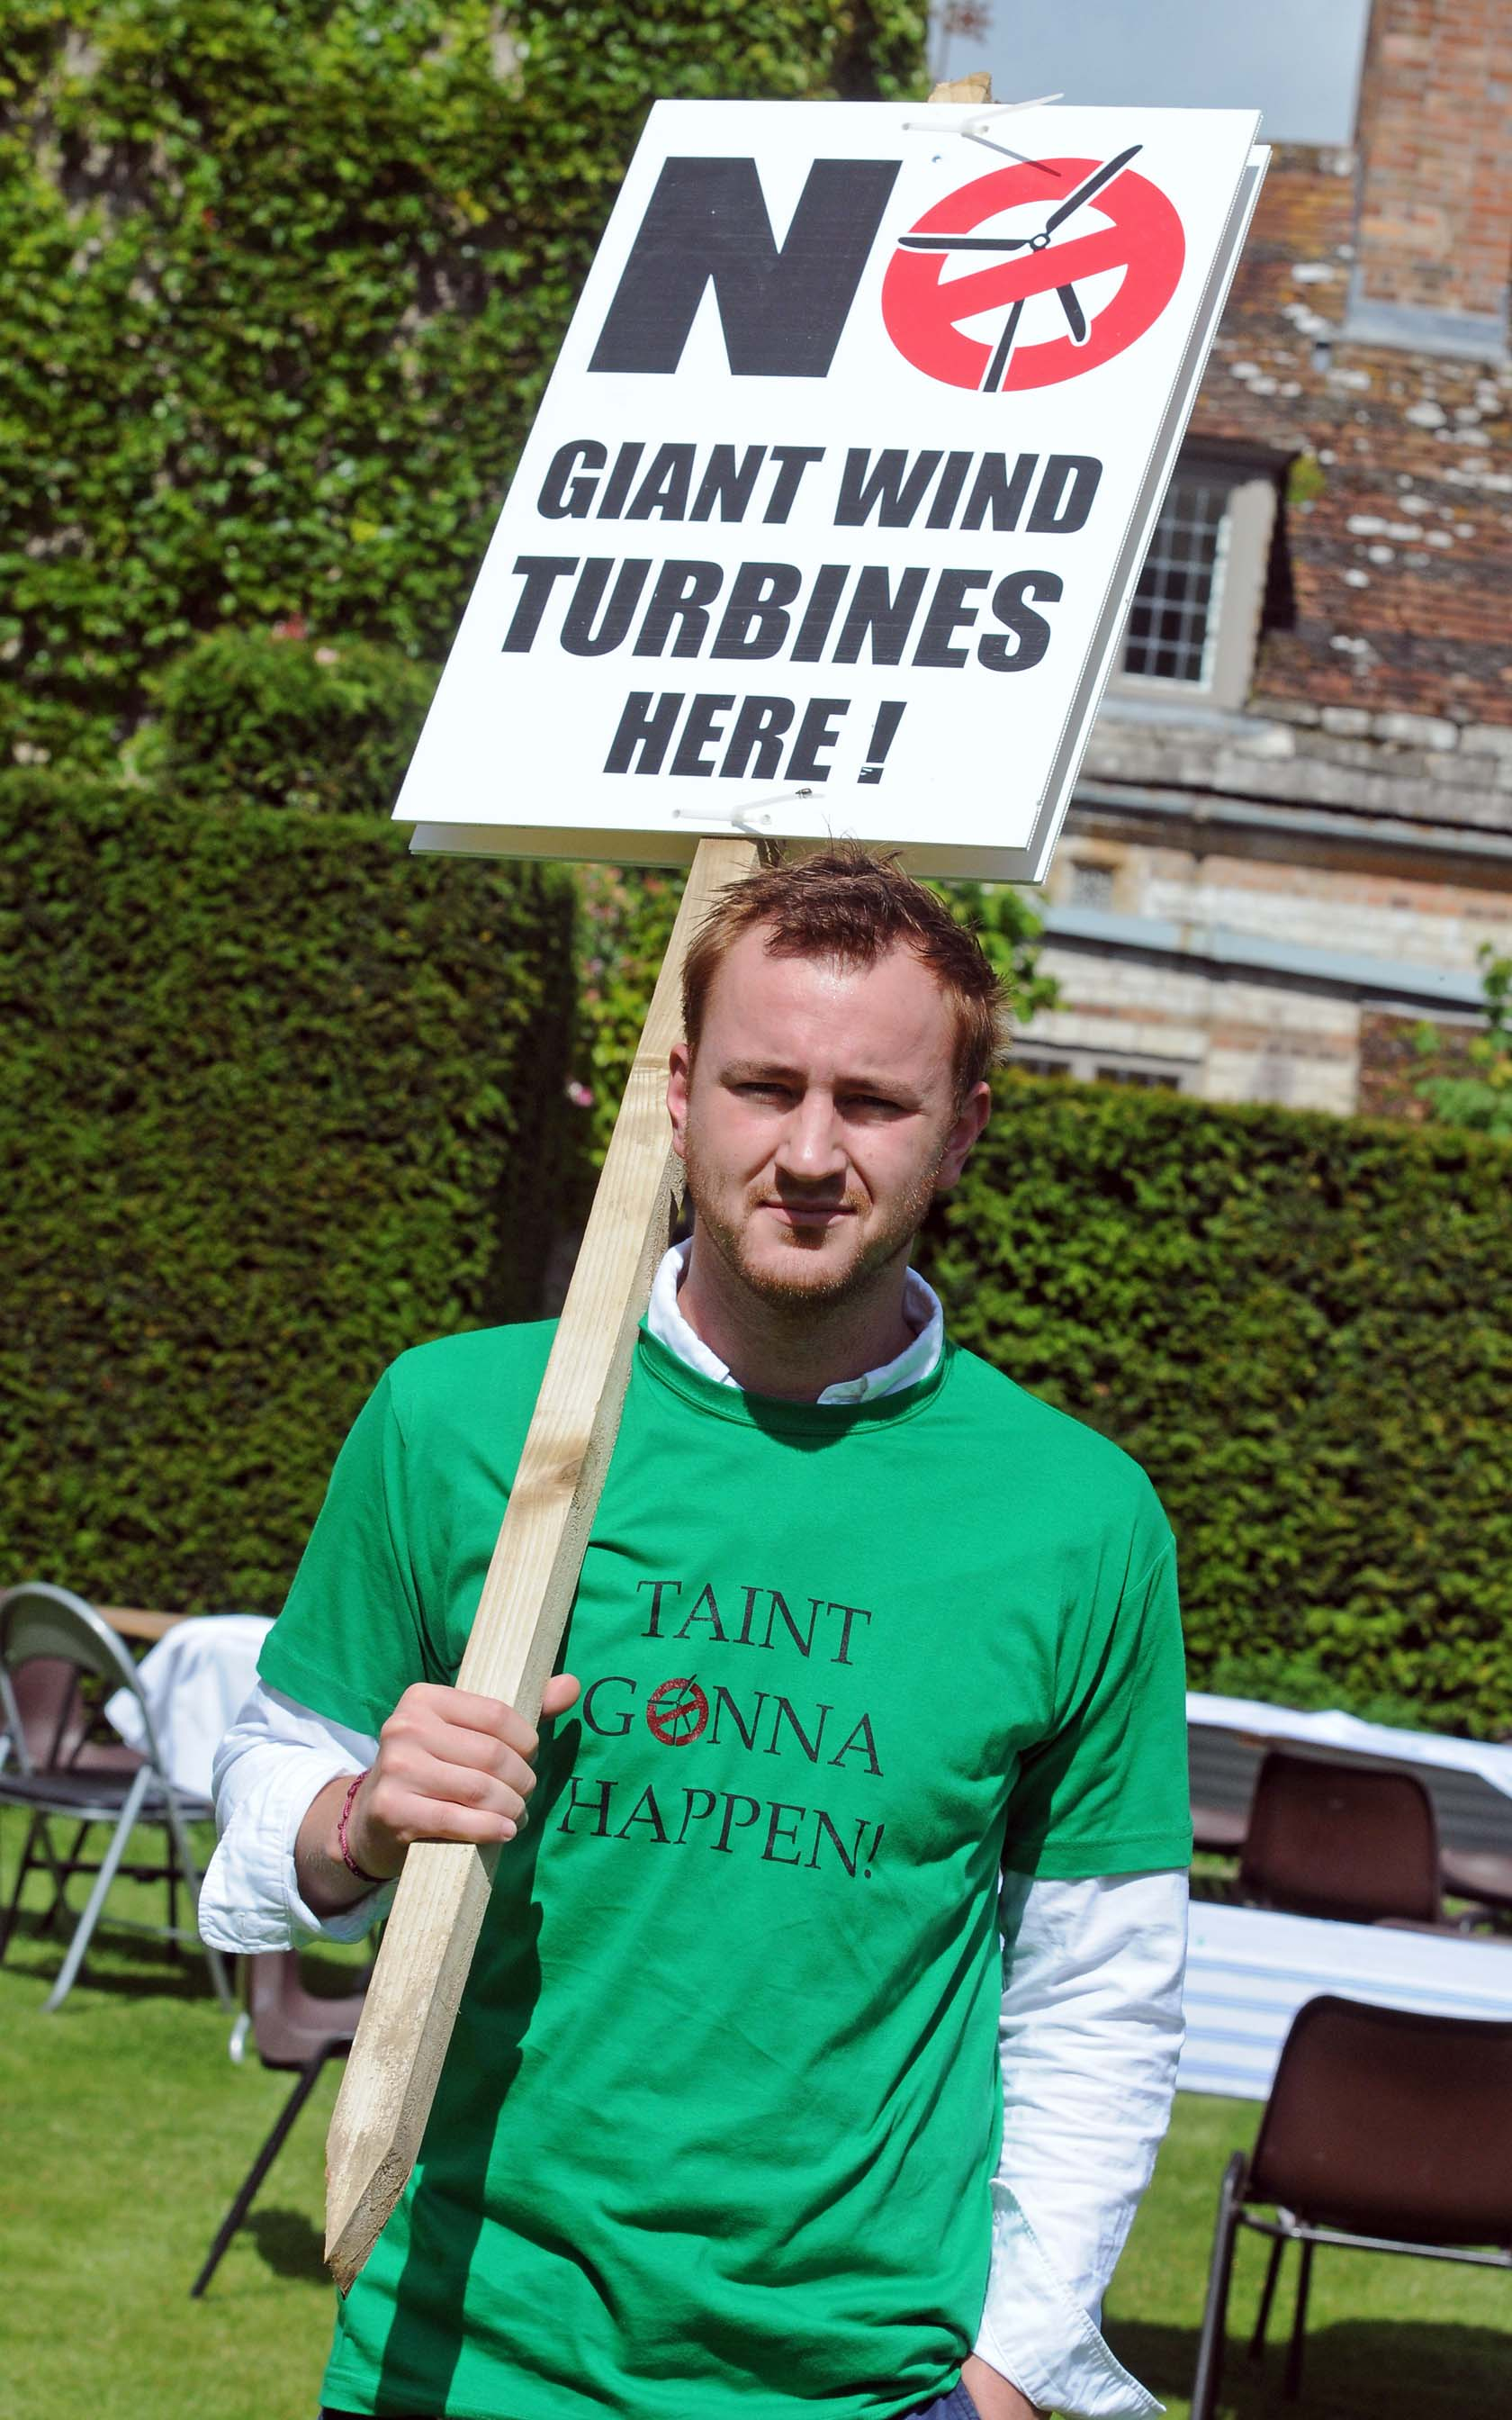 Made in Chelsea star returns to Dorset for windfarm campaign